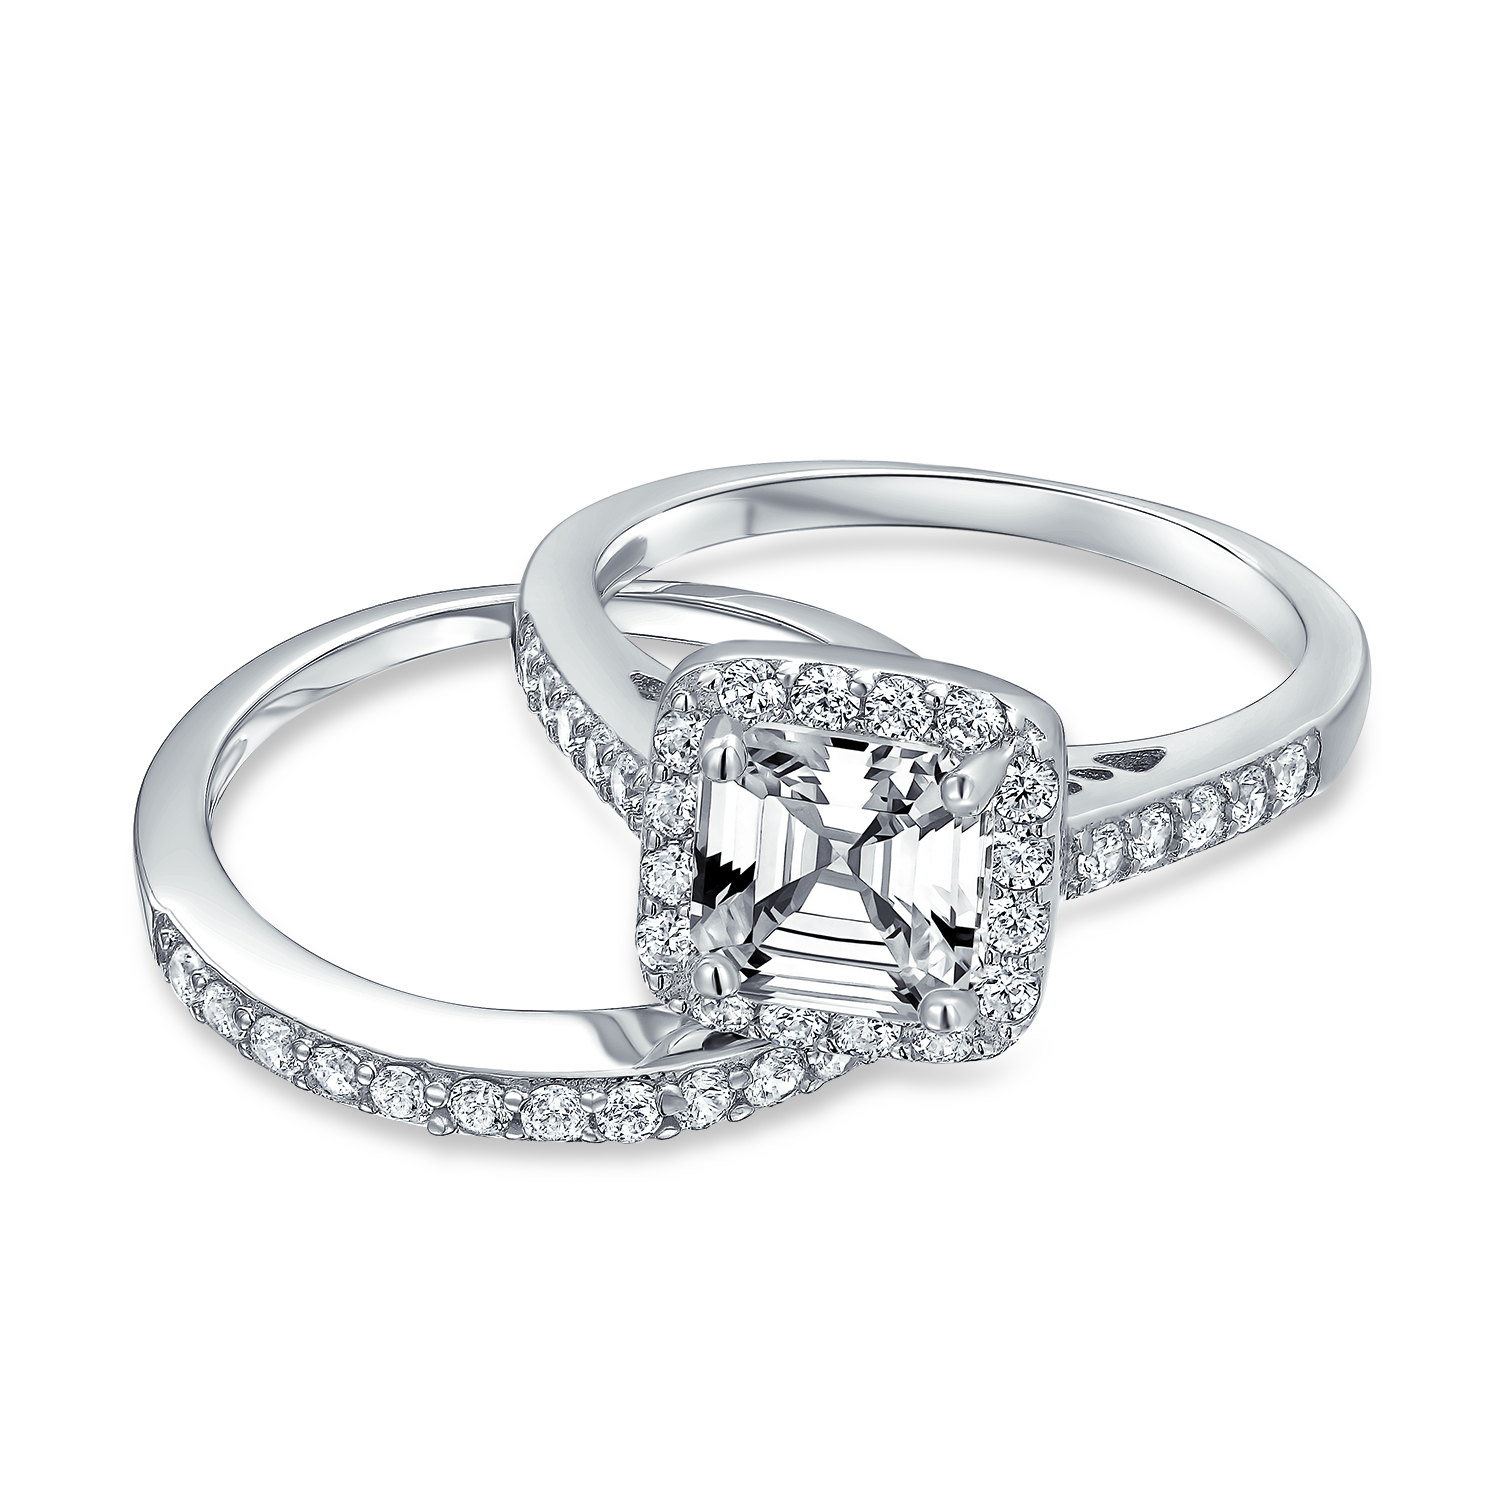 Details about  /2CT Art Deco Solitaire AAA CZ Round Engagement Wedding Band Ring Set